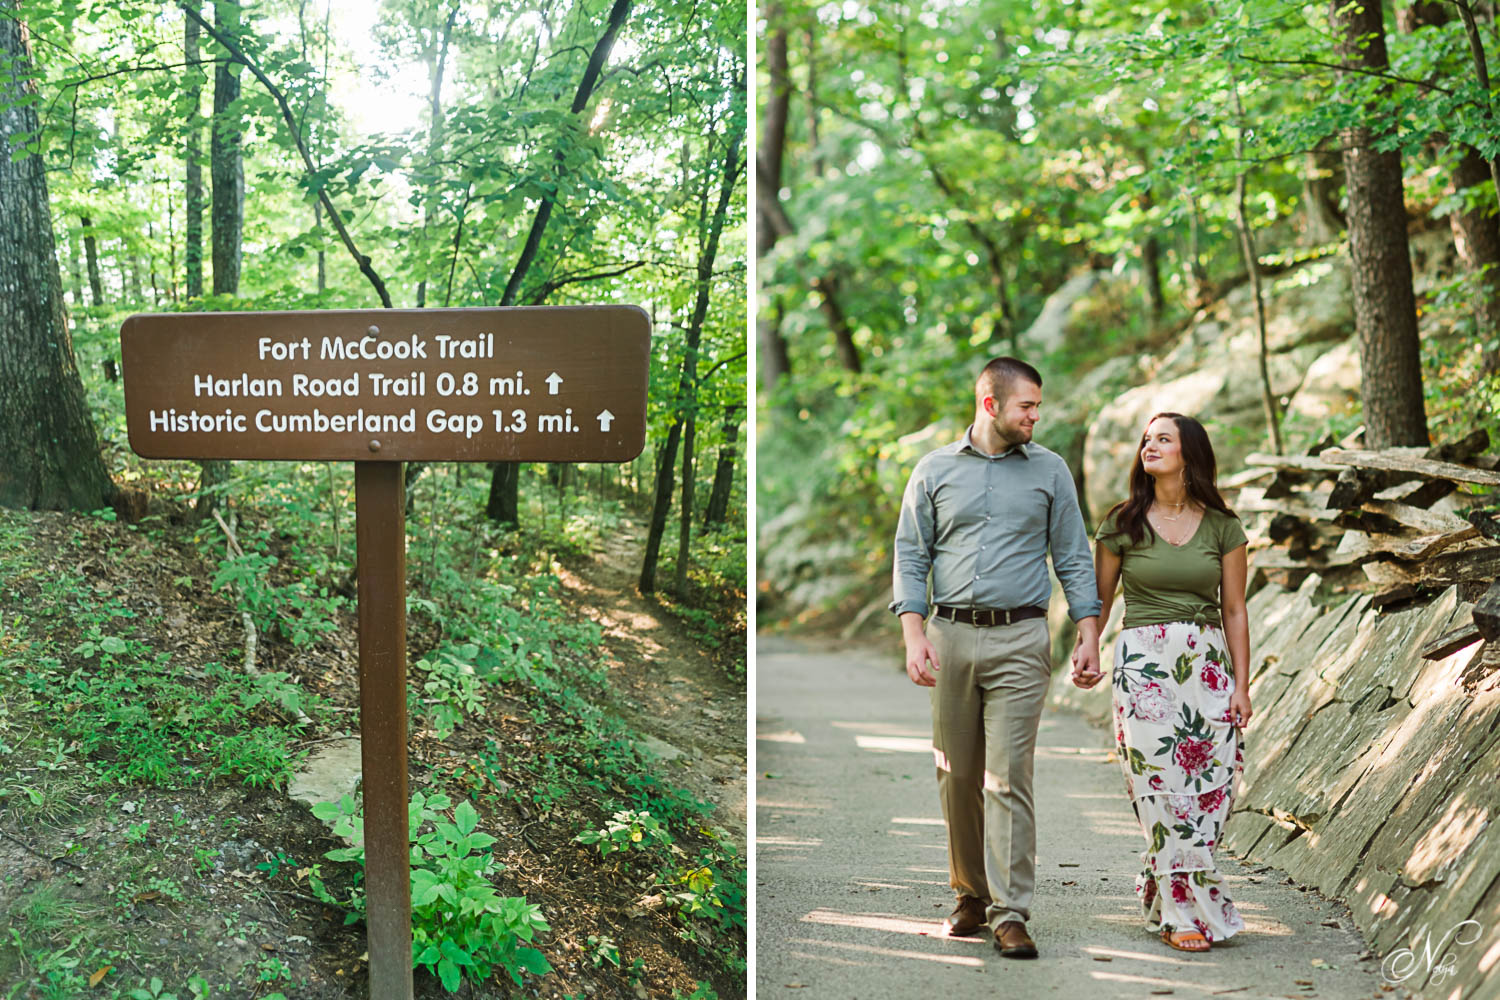 the trail leading to the Pinackle overlook and Fort McCook trail. And two people enjoying the lesurely walk to the Cumberland Gap overlook